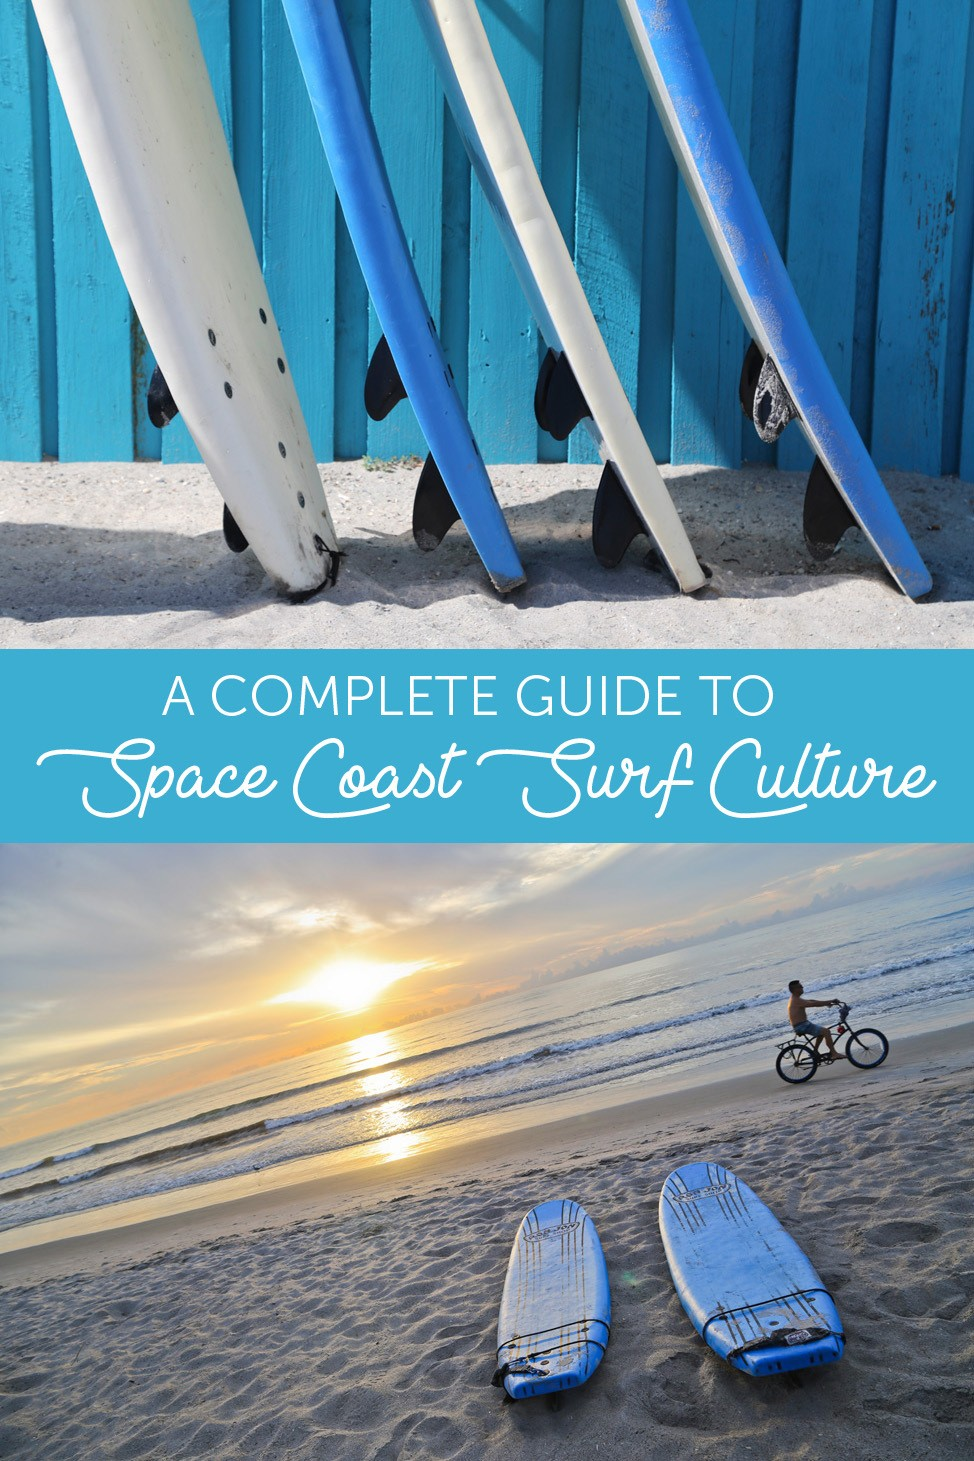 A Complete Guide to Space Coast Surf Culture